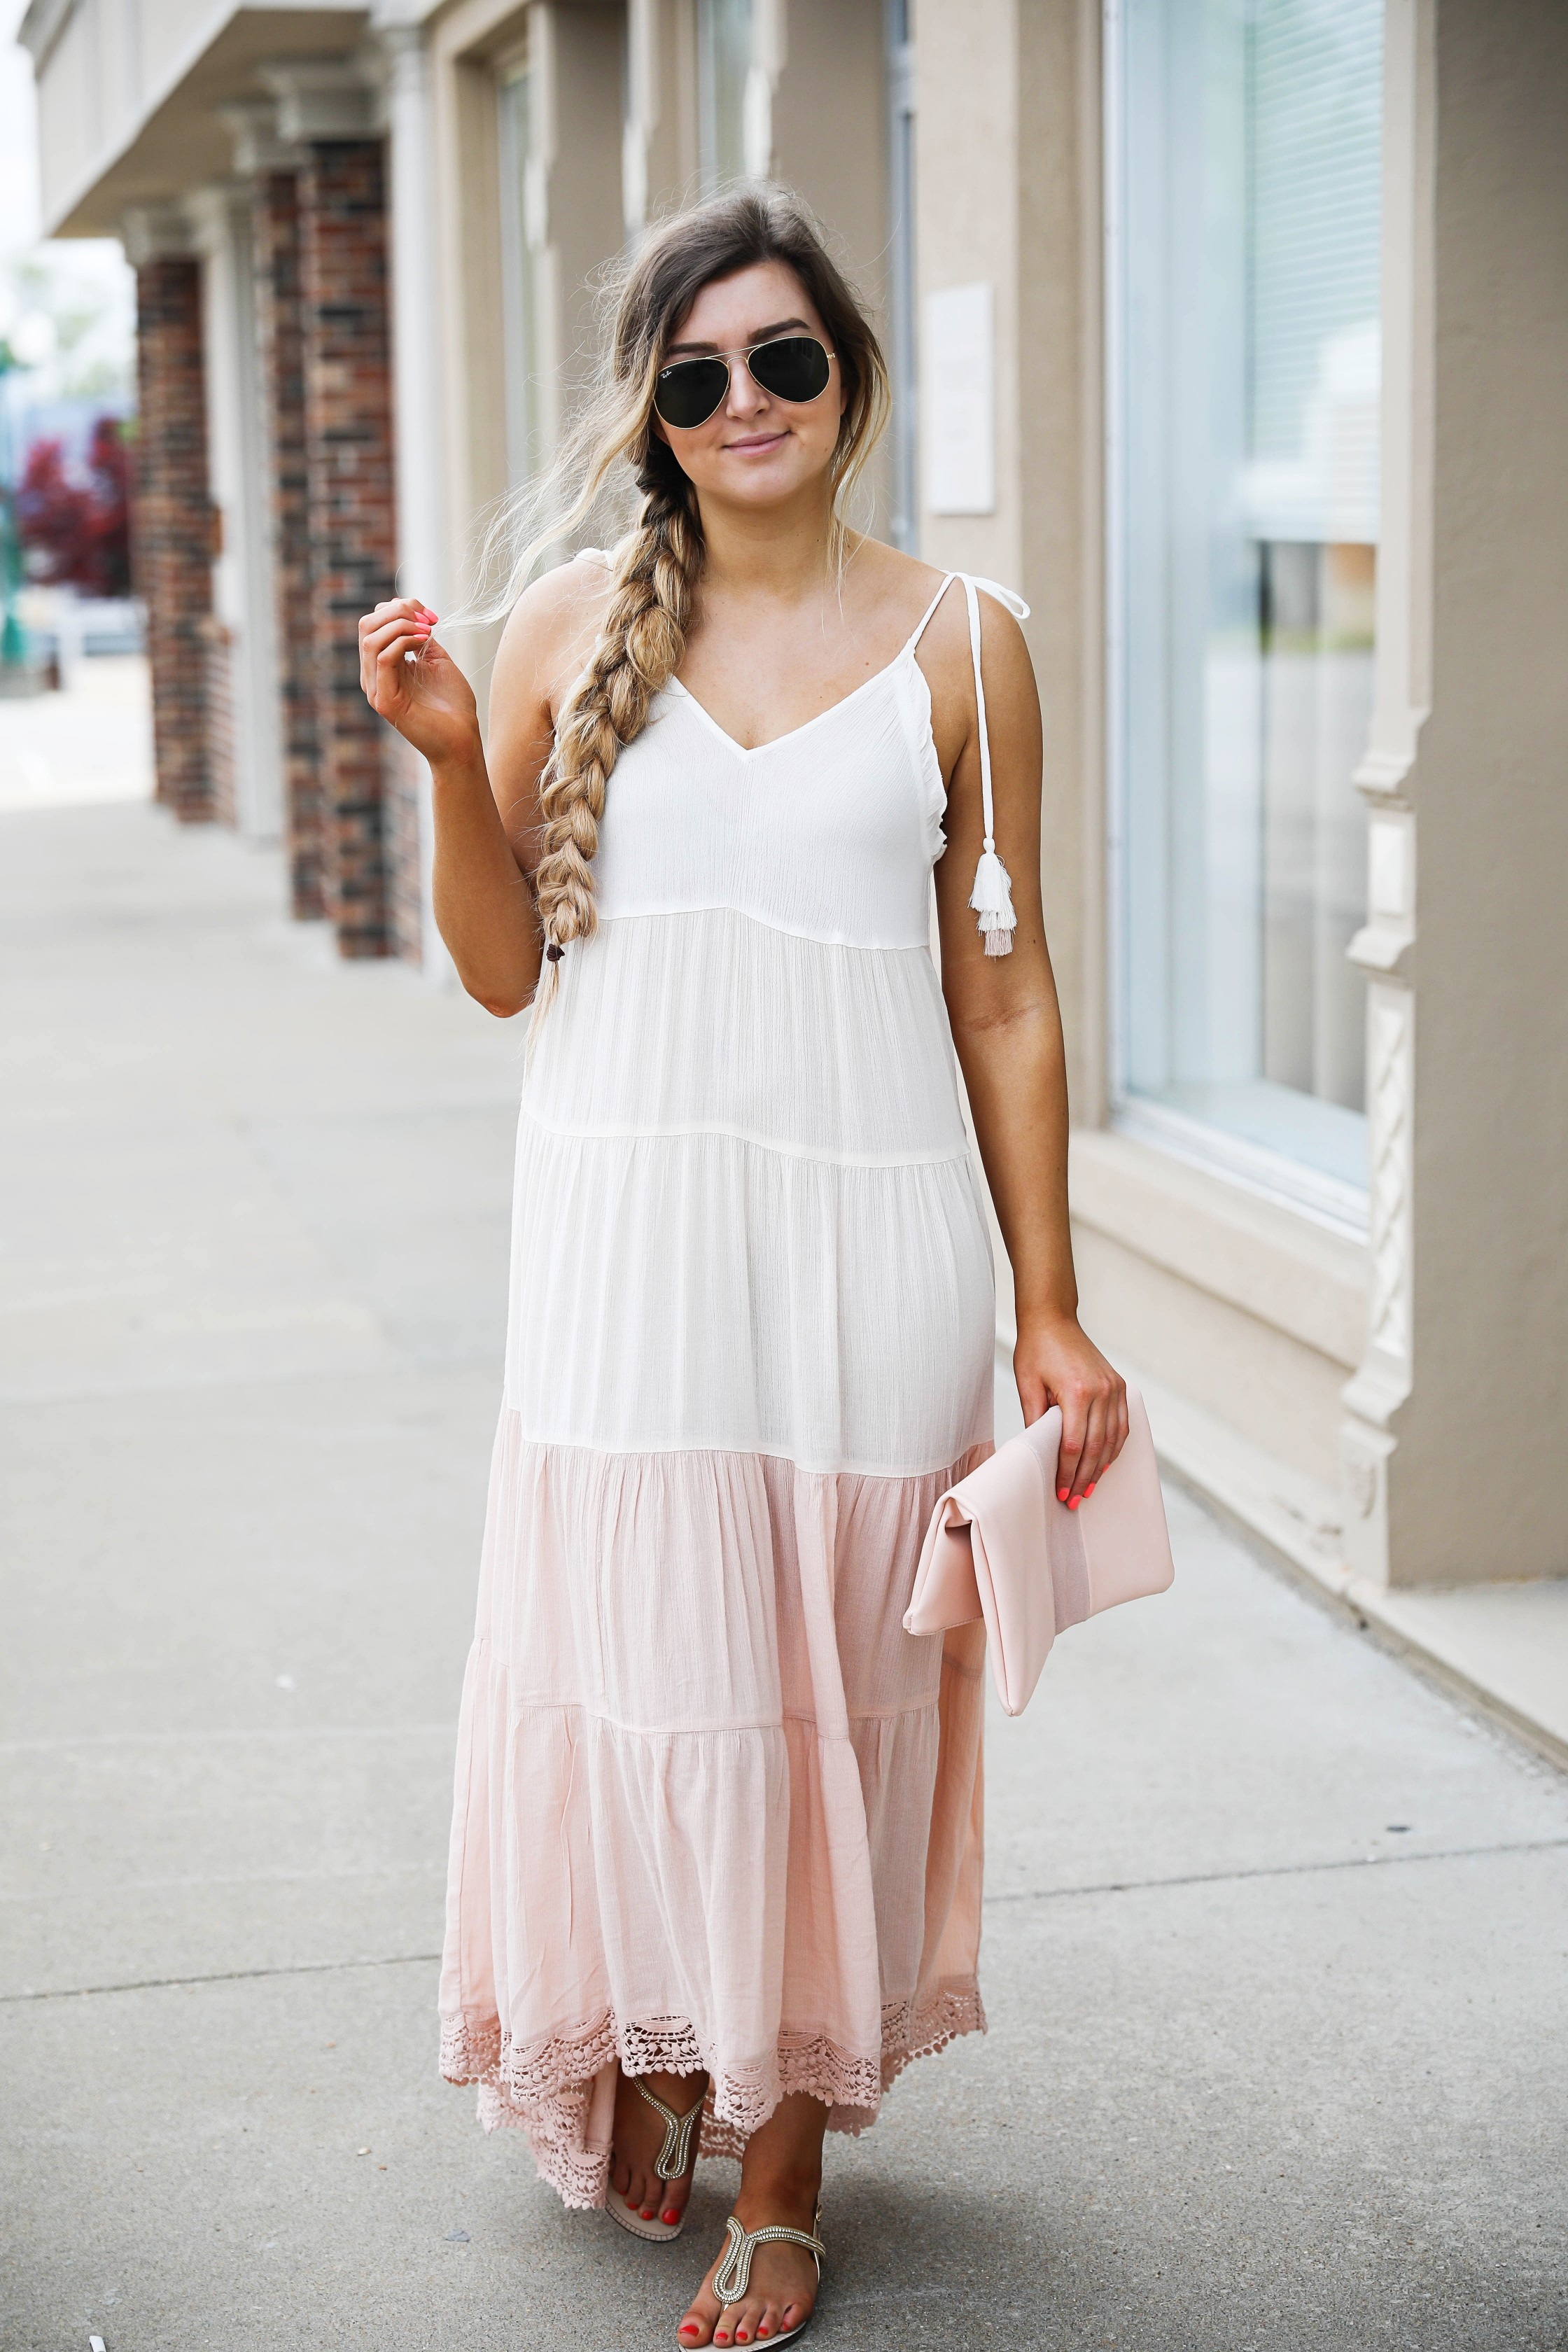 This pink and white color block dress is the perfect flowy beach dress for this spring and summer. Perfect spring outfit. By Lauren Lindmark on dailydoseofcharm.com daily dose of charm